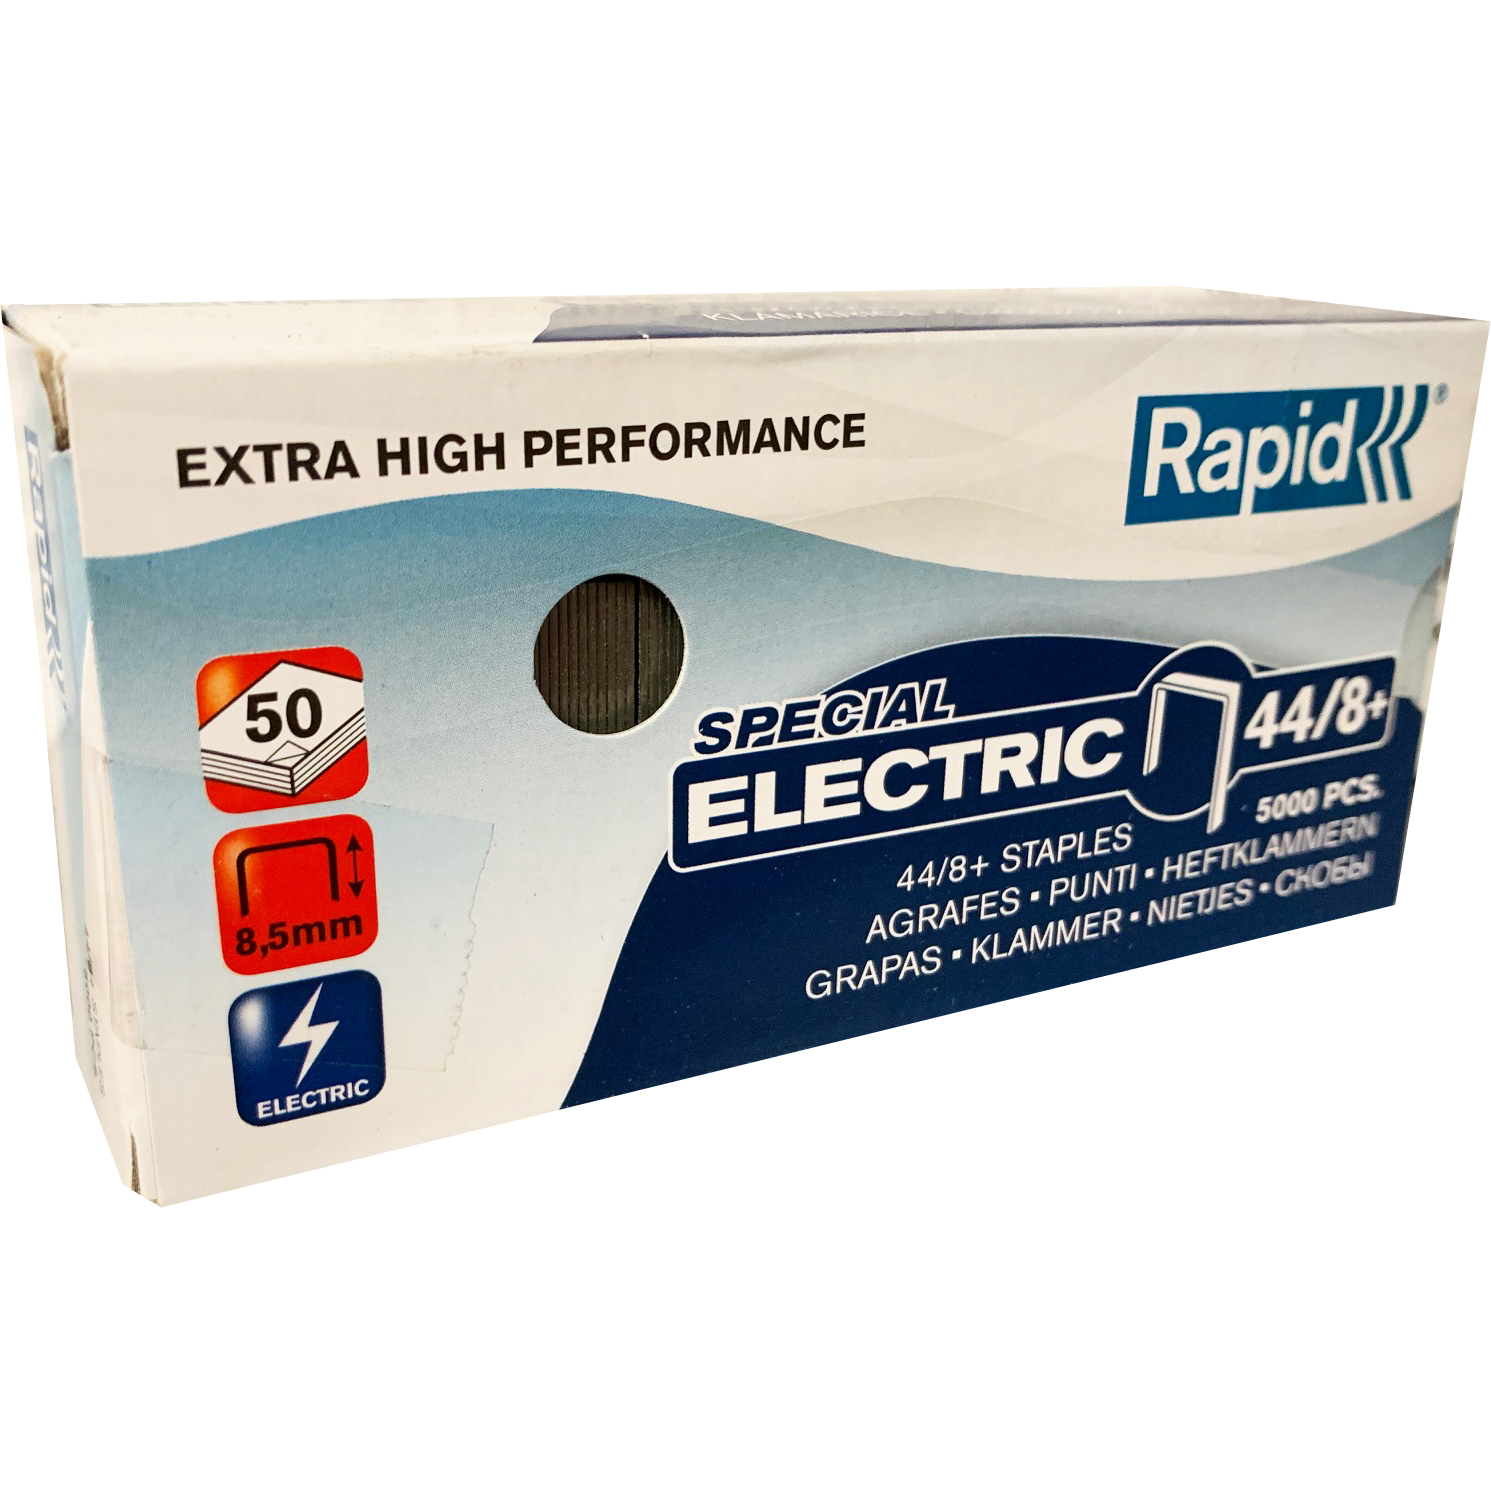 Trade Box Rapid 44/8+ Special Electric Staples (12 Packs)